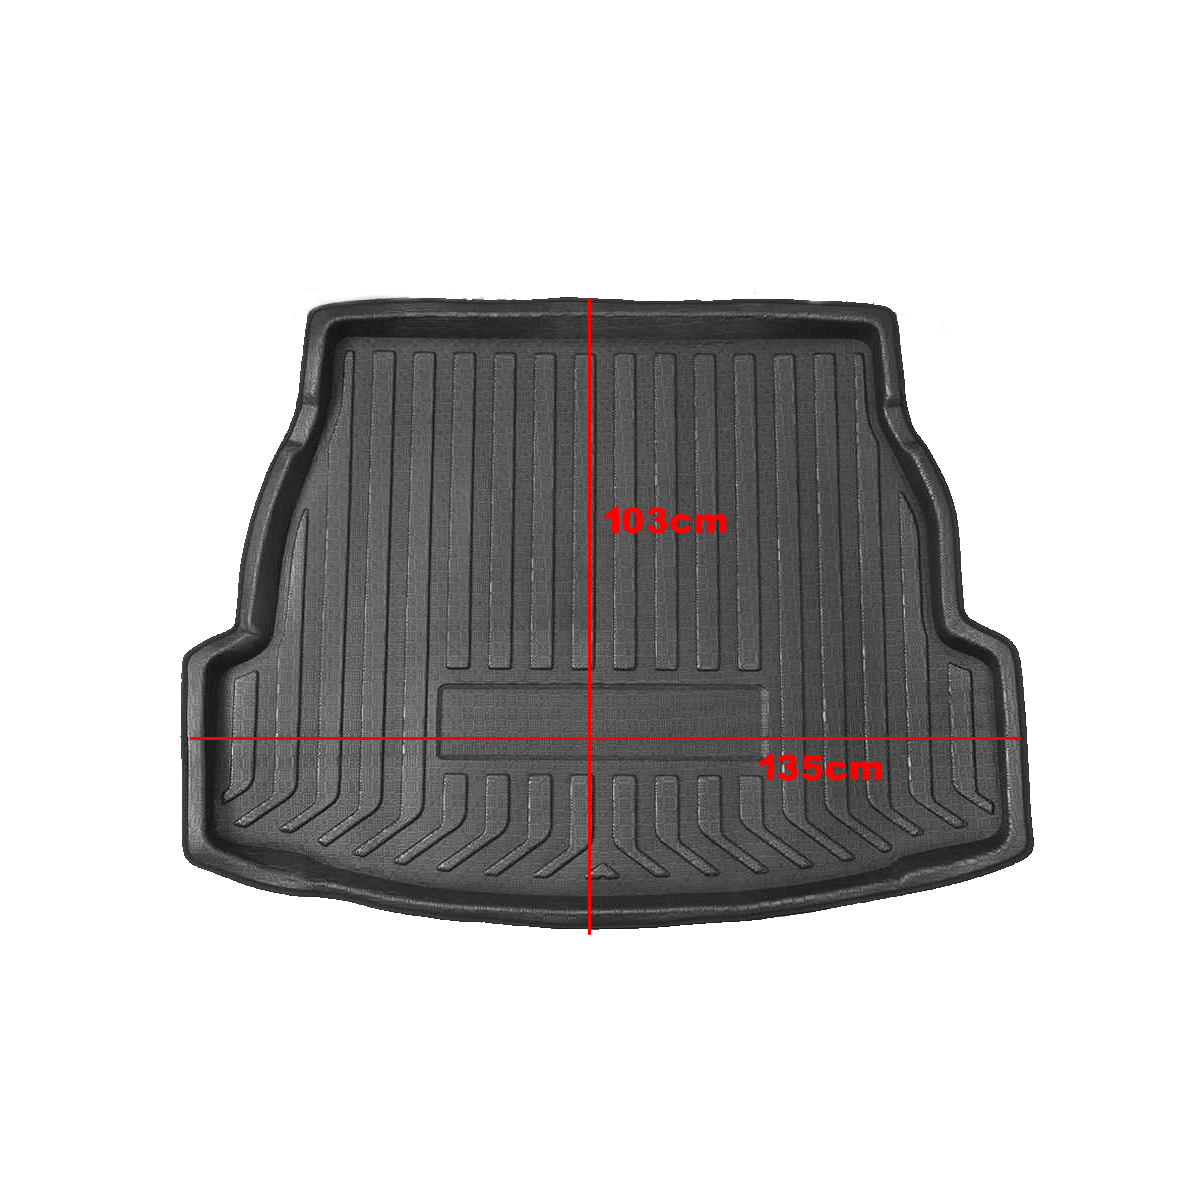 lowest price For Toyota RAV4 2019  Car Rear Trunk Boot Liner Cargo Mat Luggage Tray Floor Carpet Mud Protector Replacement Car Accessories